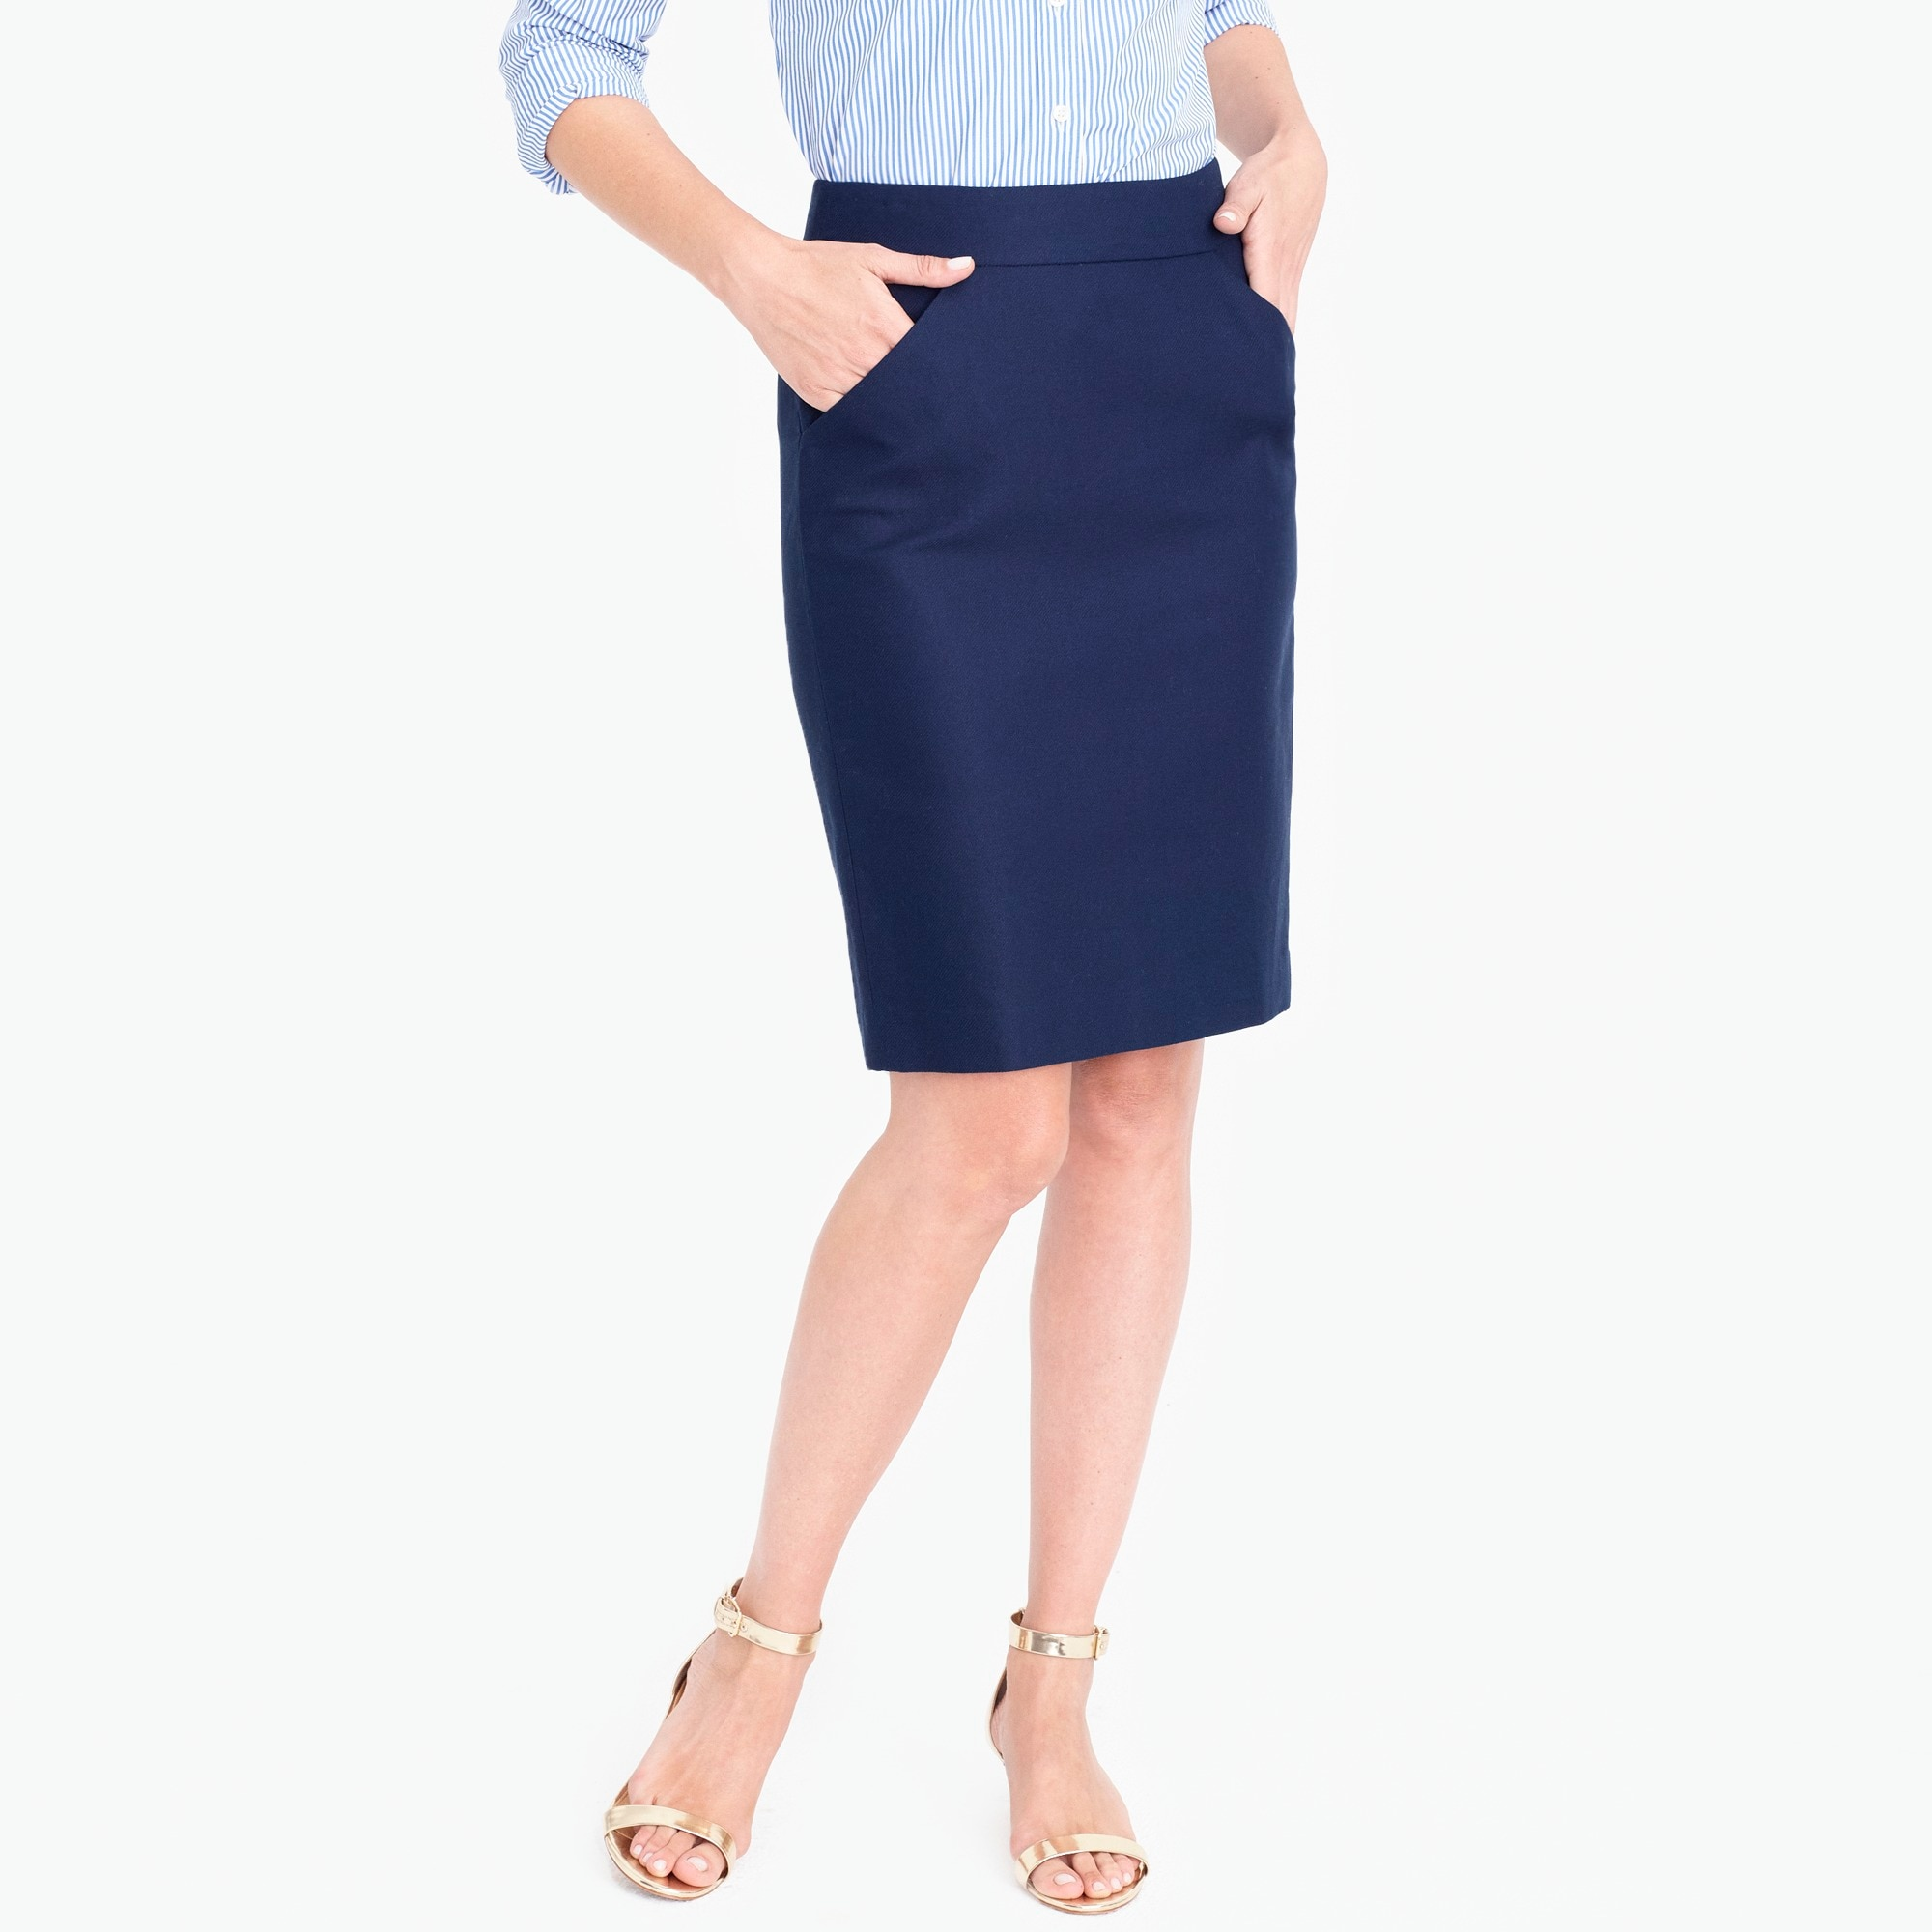 Pencil skirt in double-serge cotton factorywomen sizes 18-20 c